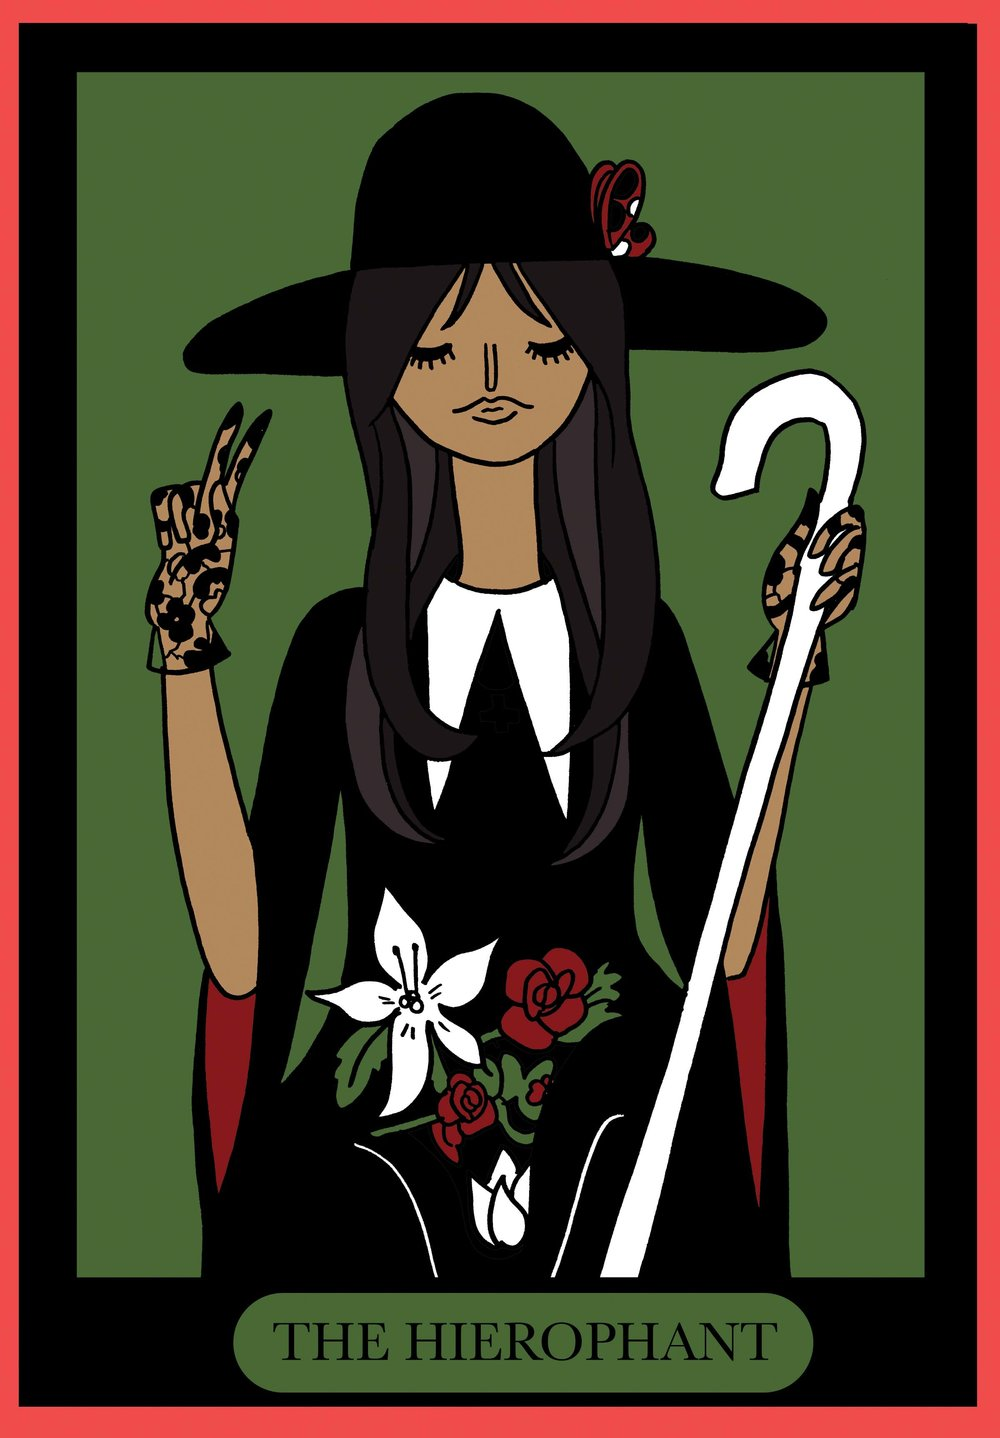 the-hierophant-card.jpg